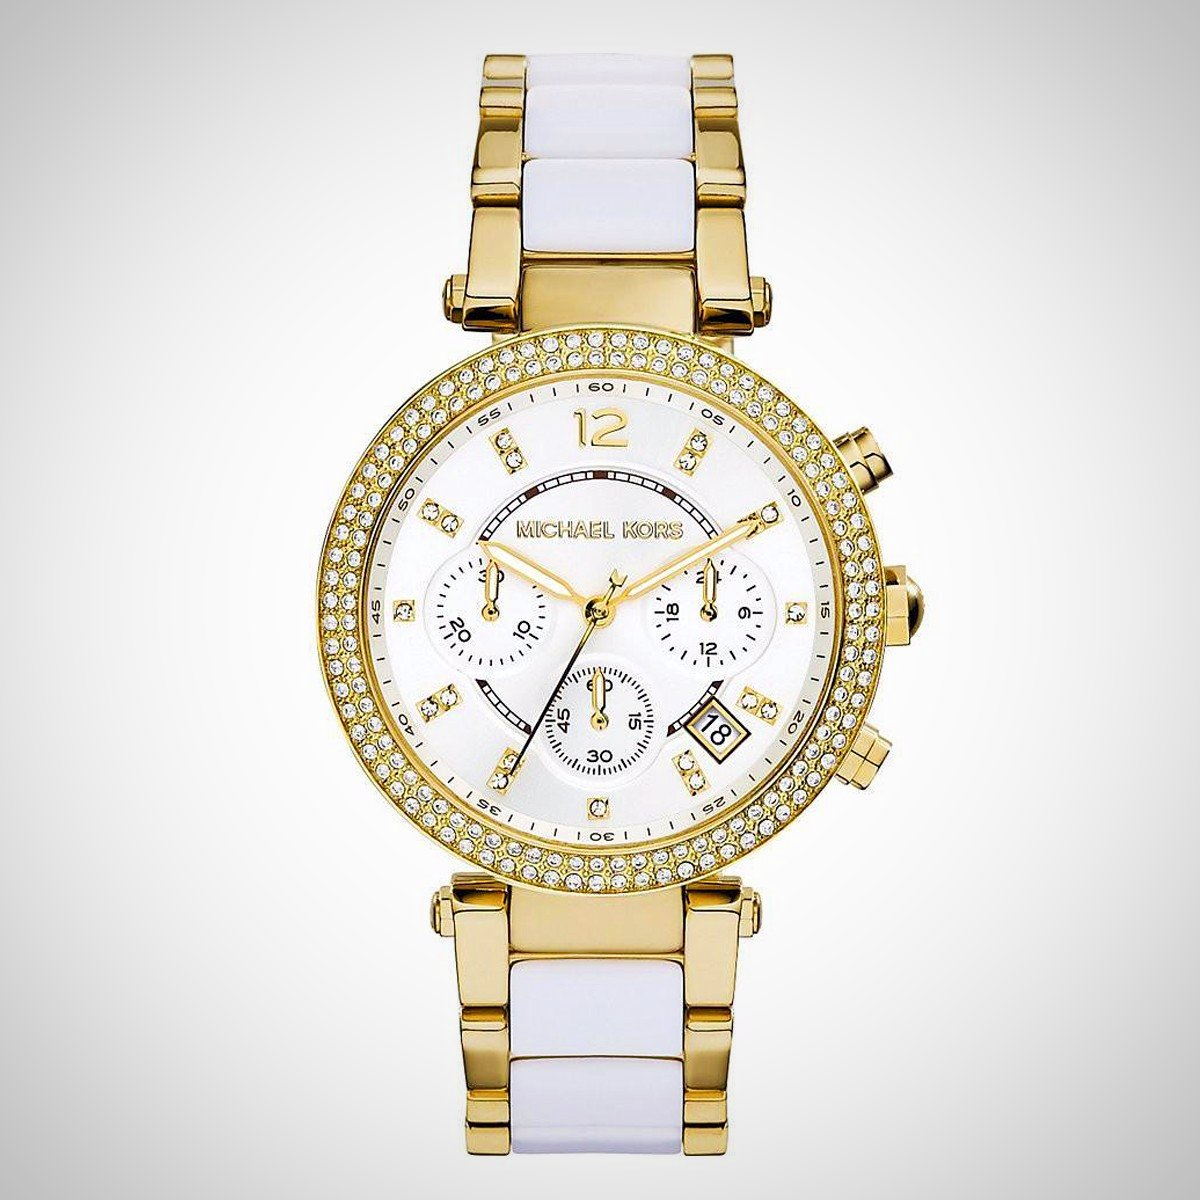 Michael Kors MK6119 Gold Tone Stainless Steel Case Ladies Watch